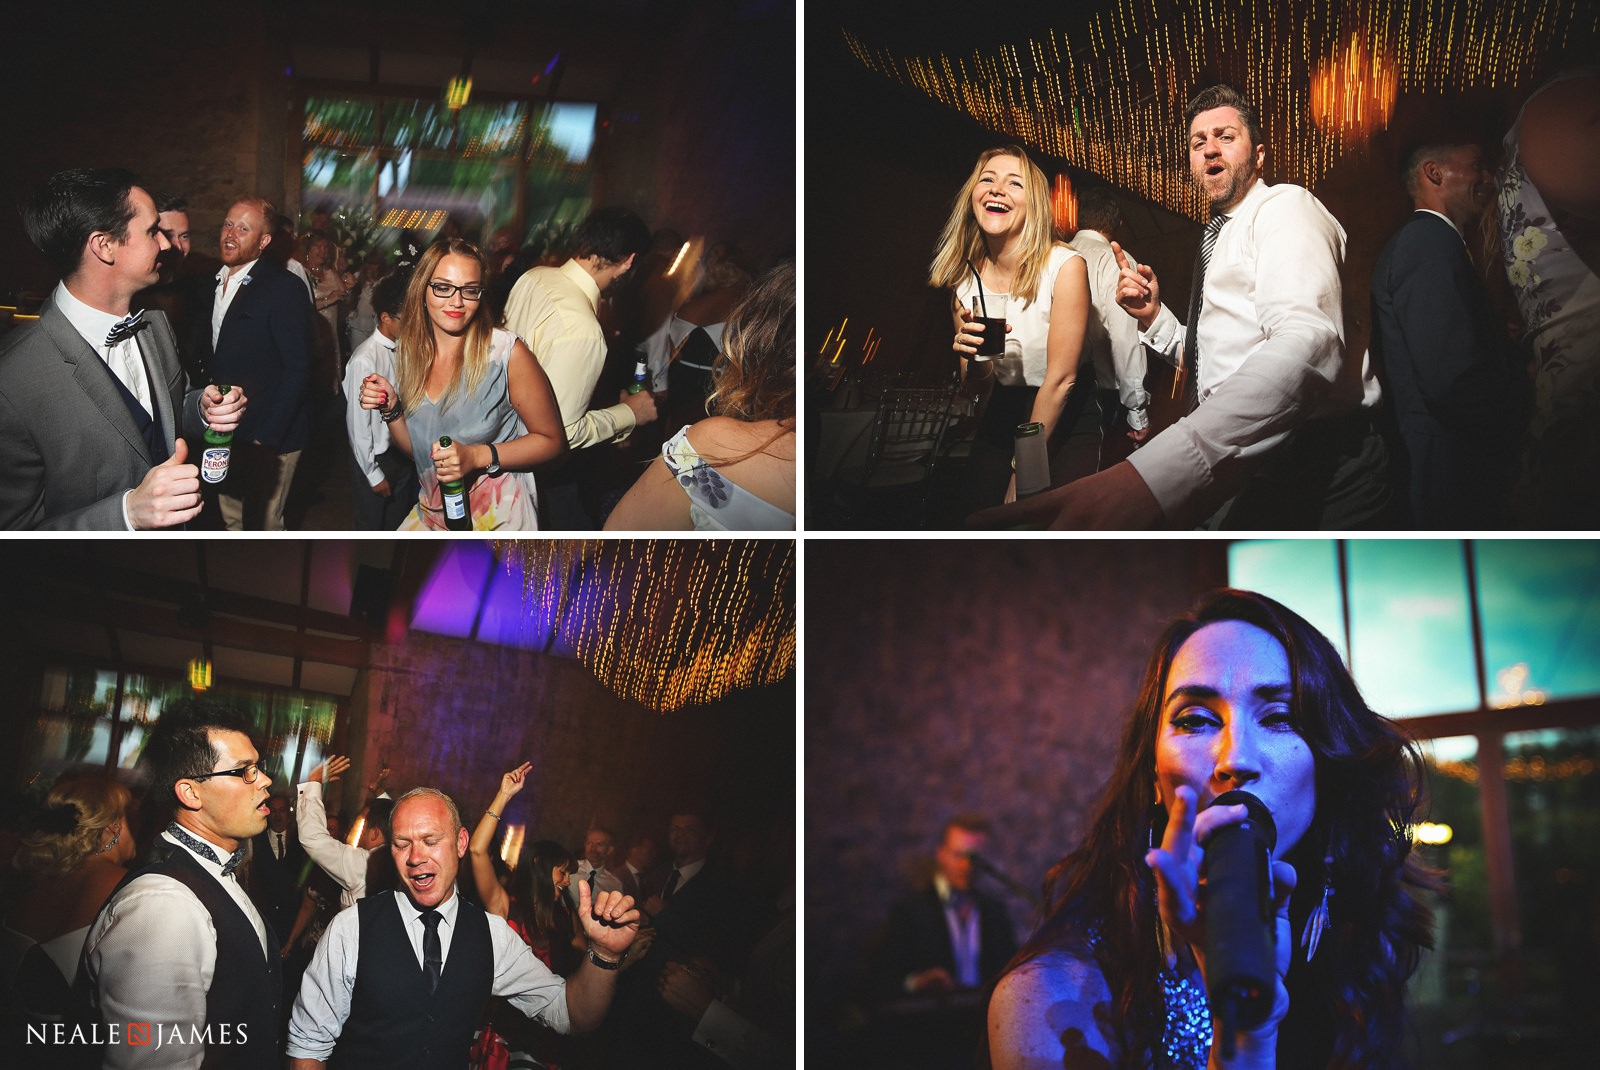 Guests hit the dancefloor as a live band plays during a wedding reception at Notley Abbey